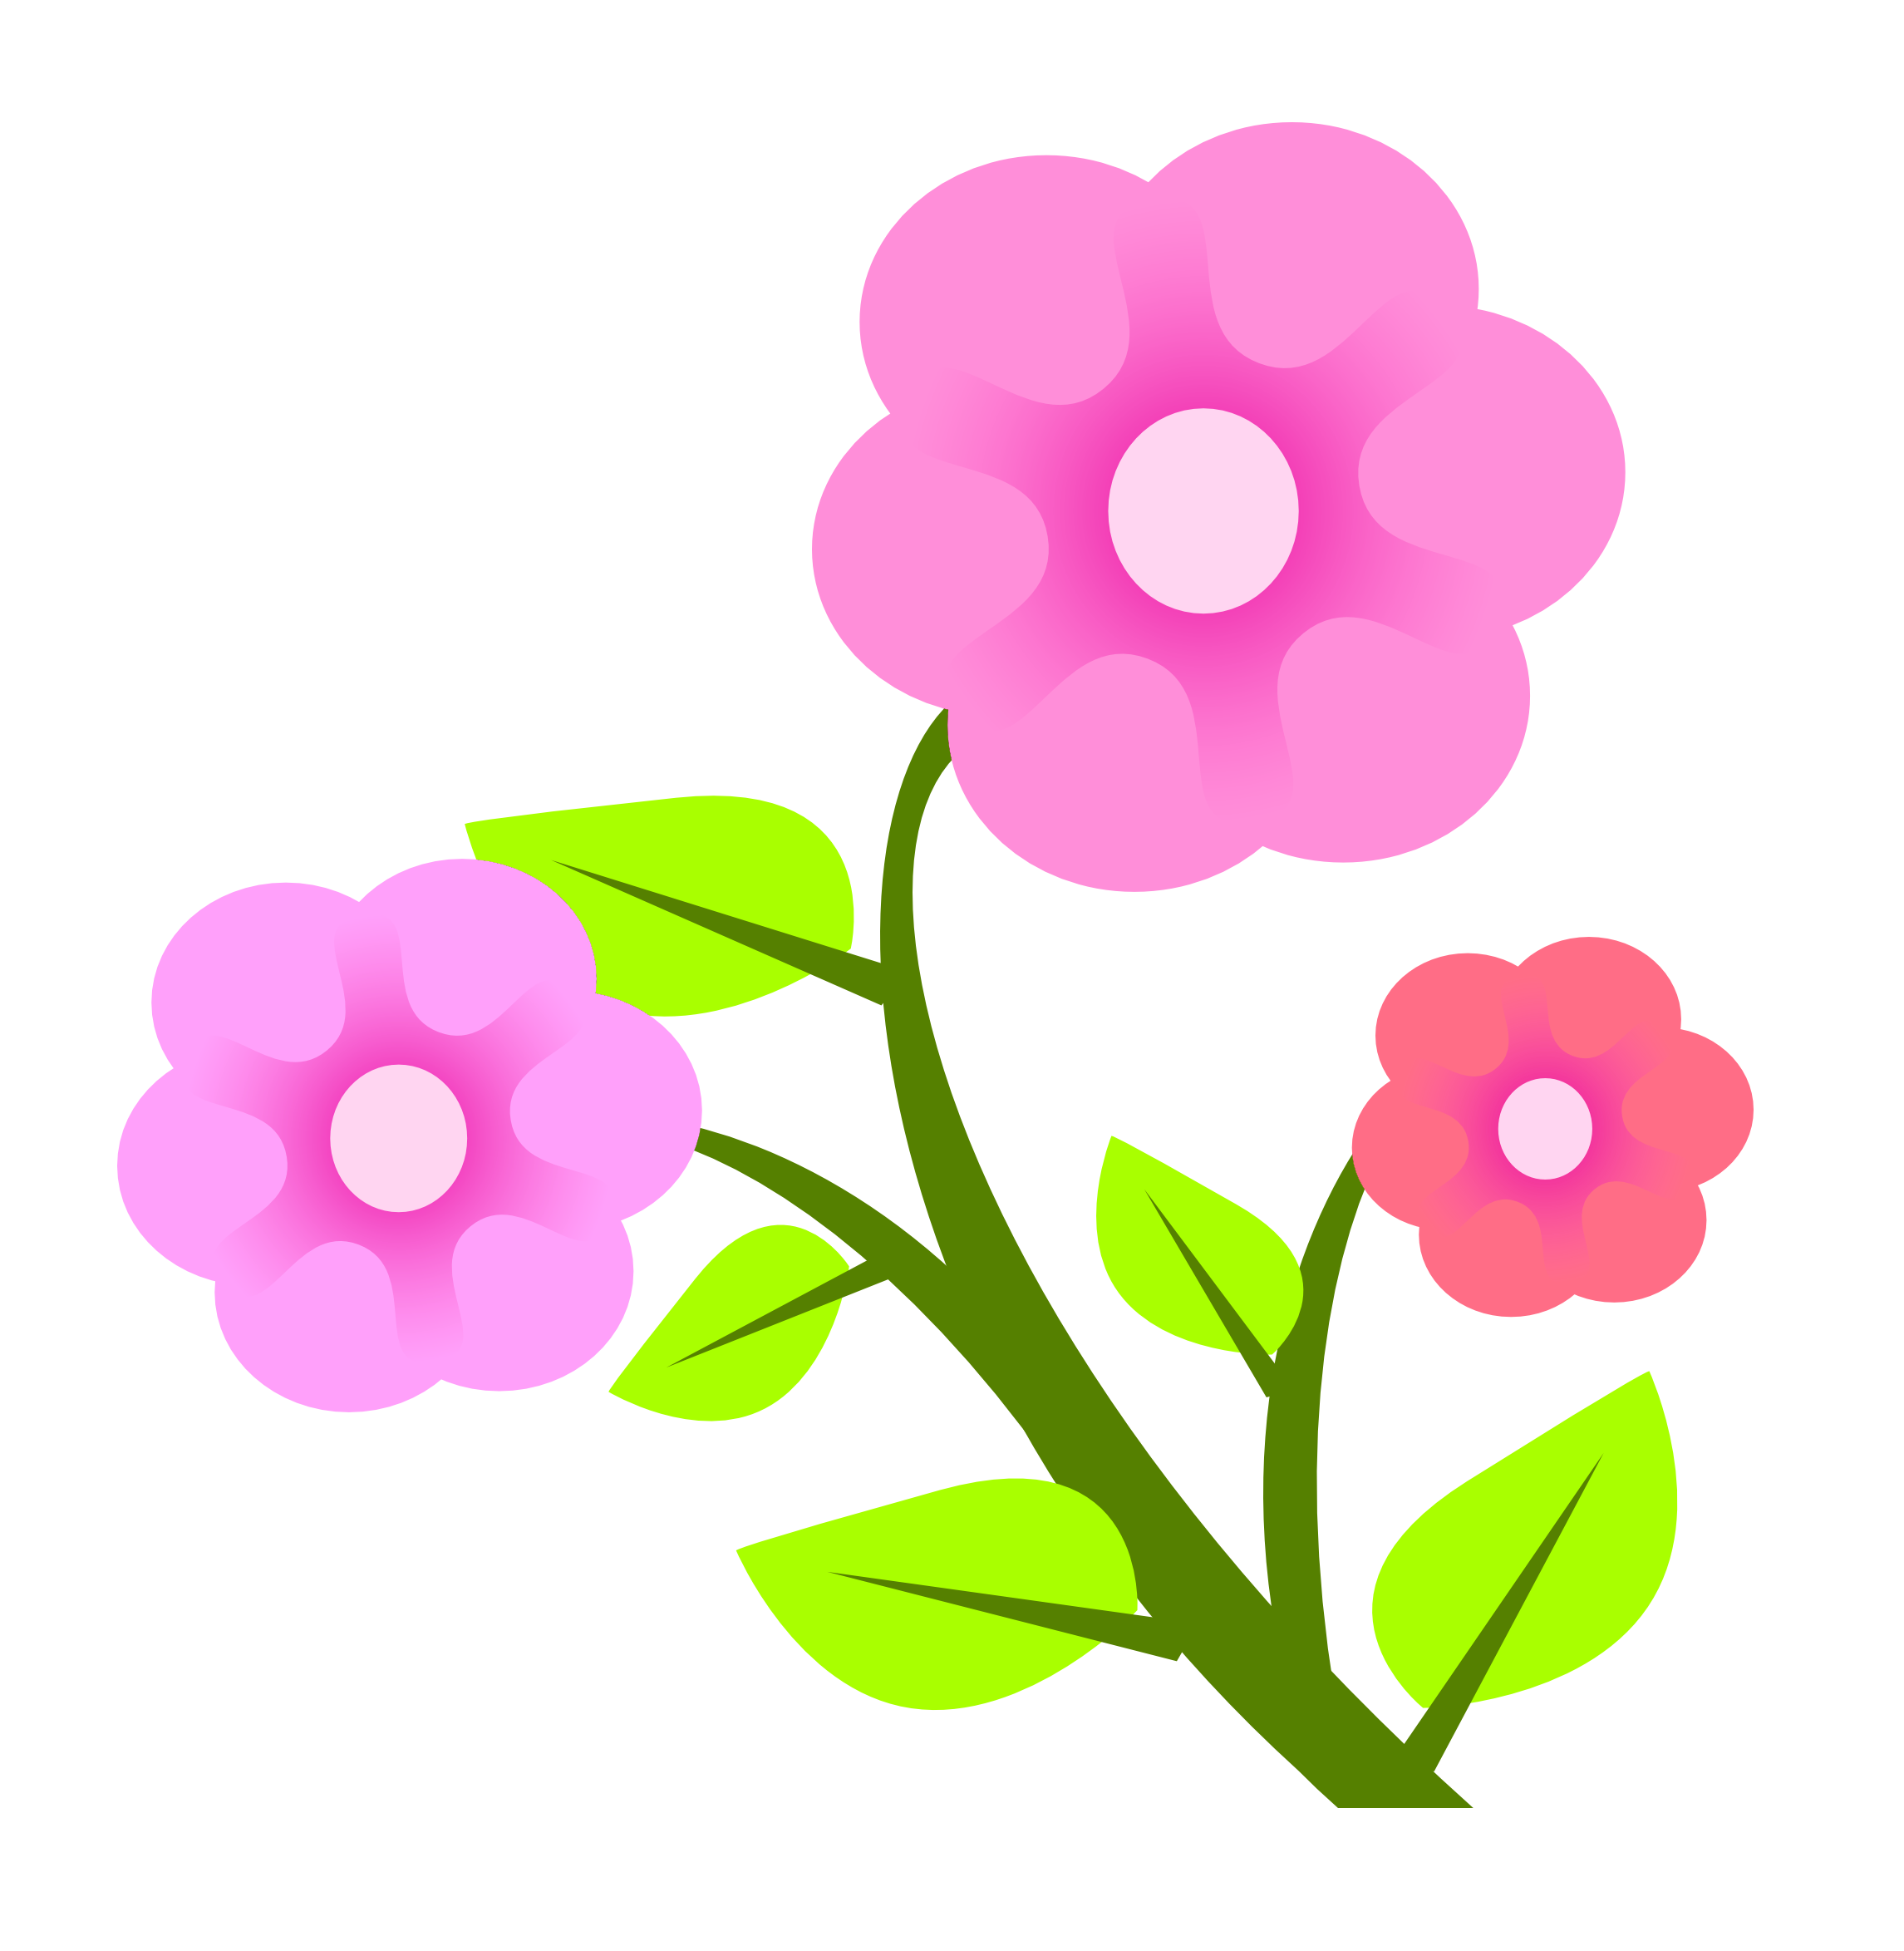 purepng.com flower vectorflower clipart vector floral 961524679753a0e8b